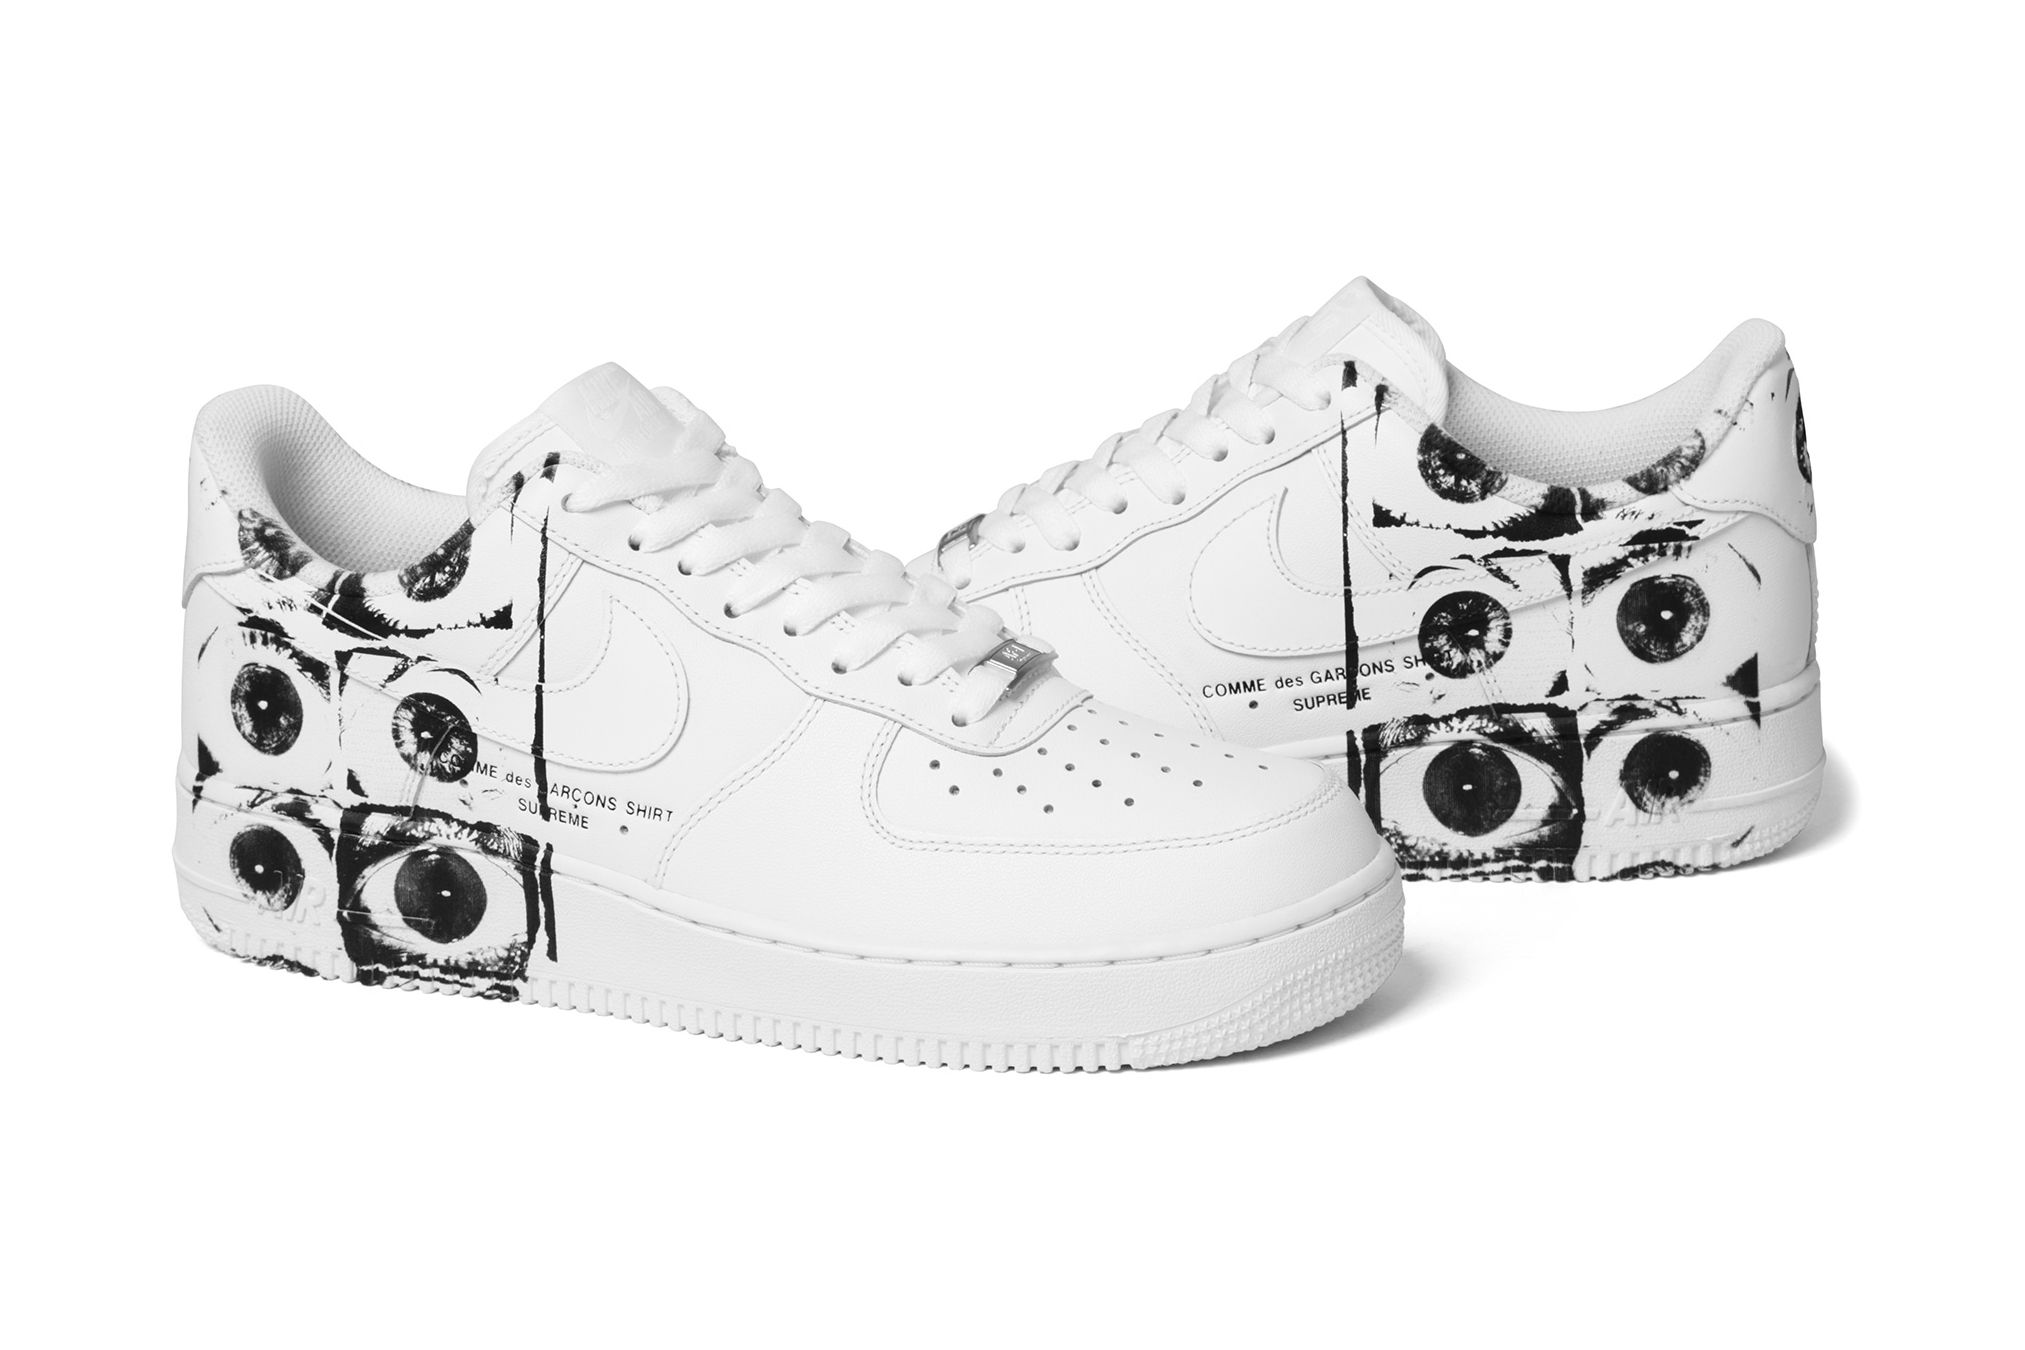 d47ec10b965 Supreme x COMME des GARÇONS SHIRT x Nike Air Force 1 Low Is Dropping This  Week